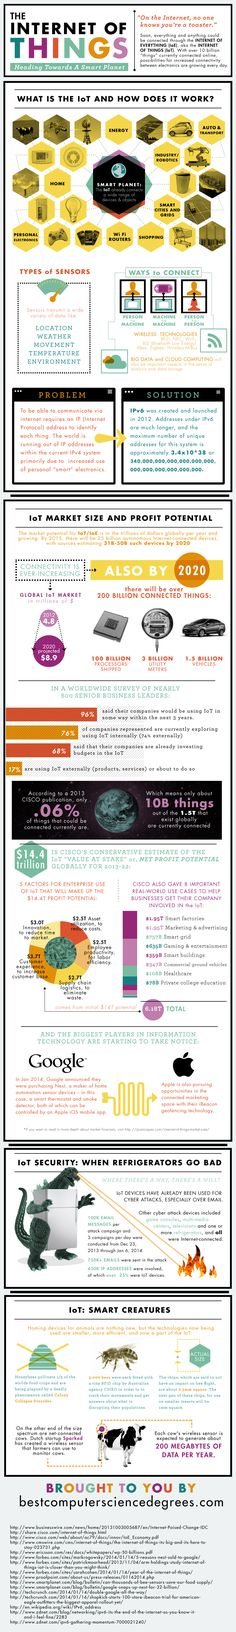 The Internet of Things (IoT) explained quickly by infographic. Image courtesy of Best Computer Science Degrees Big Data, Quantified Self, Data Science, Computer Science, Computer Programming, It Management, Connect Online, Cloud Computing, Information Technology